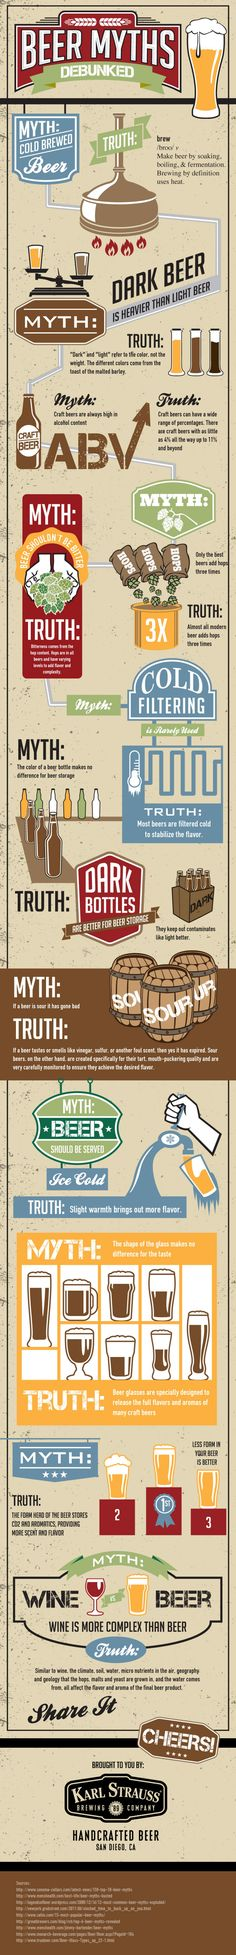 #Beer #Myths Debunked Infographic